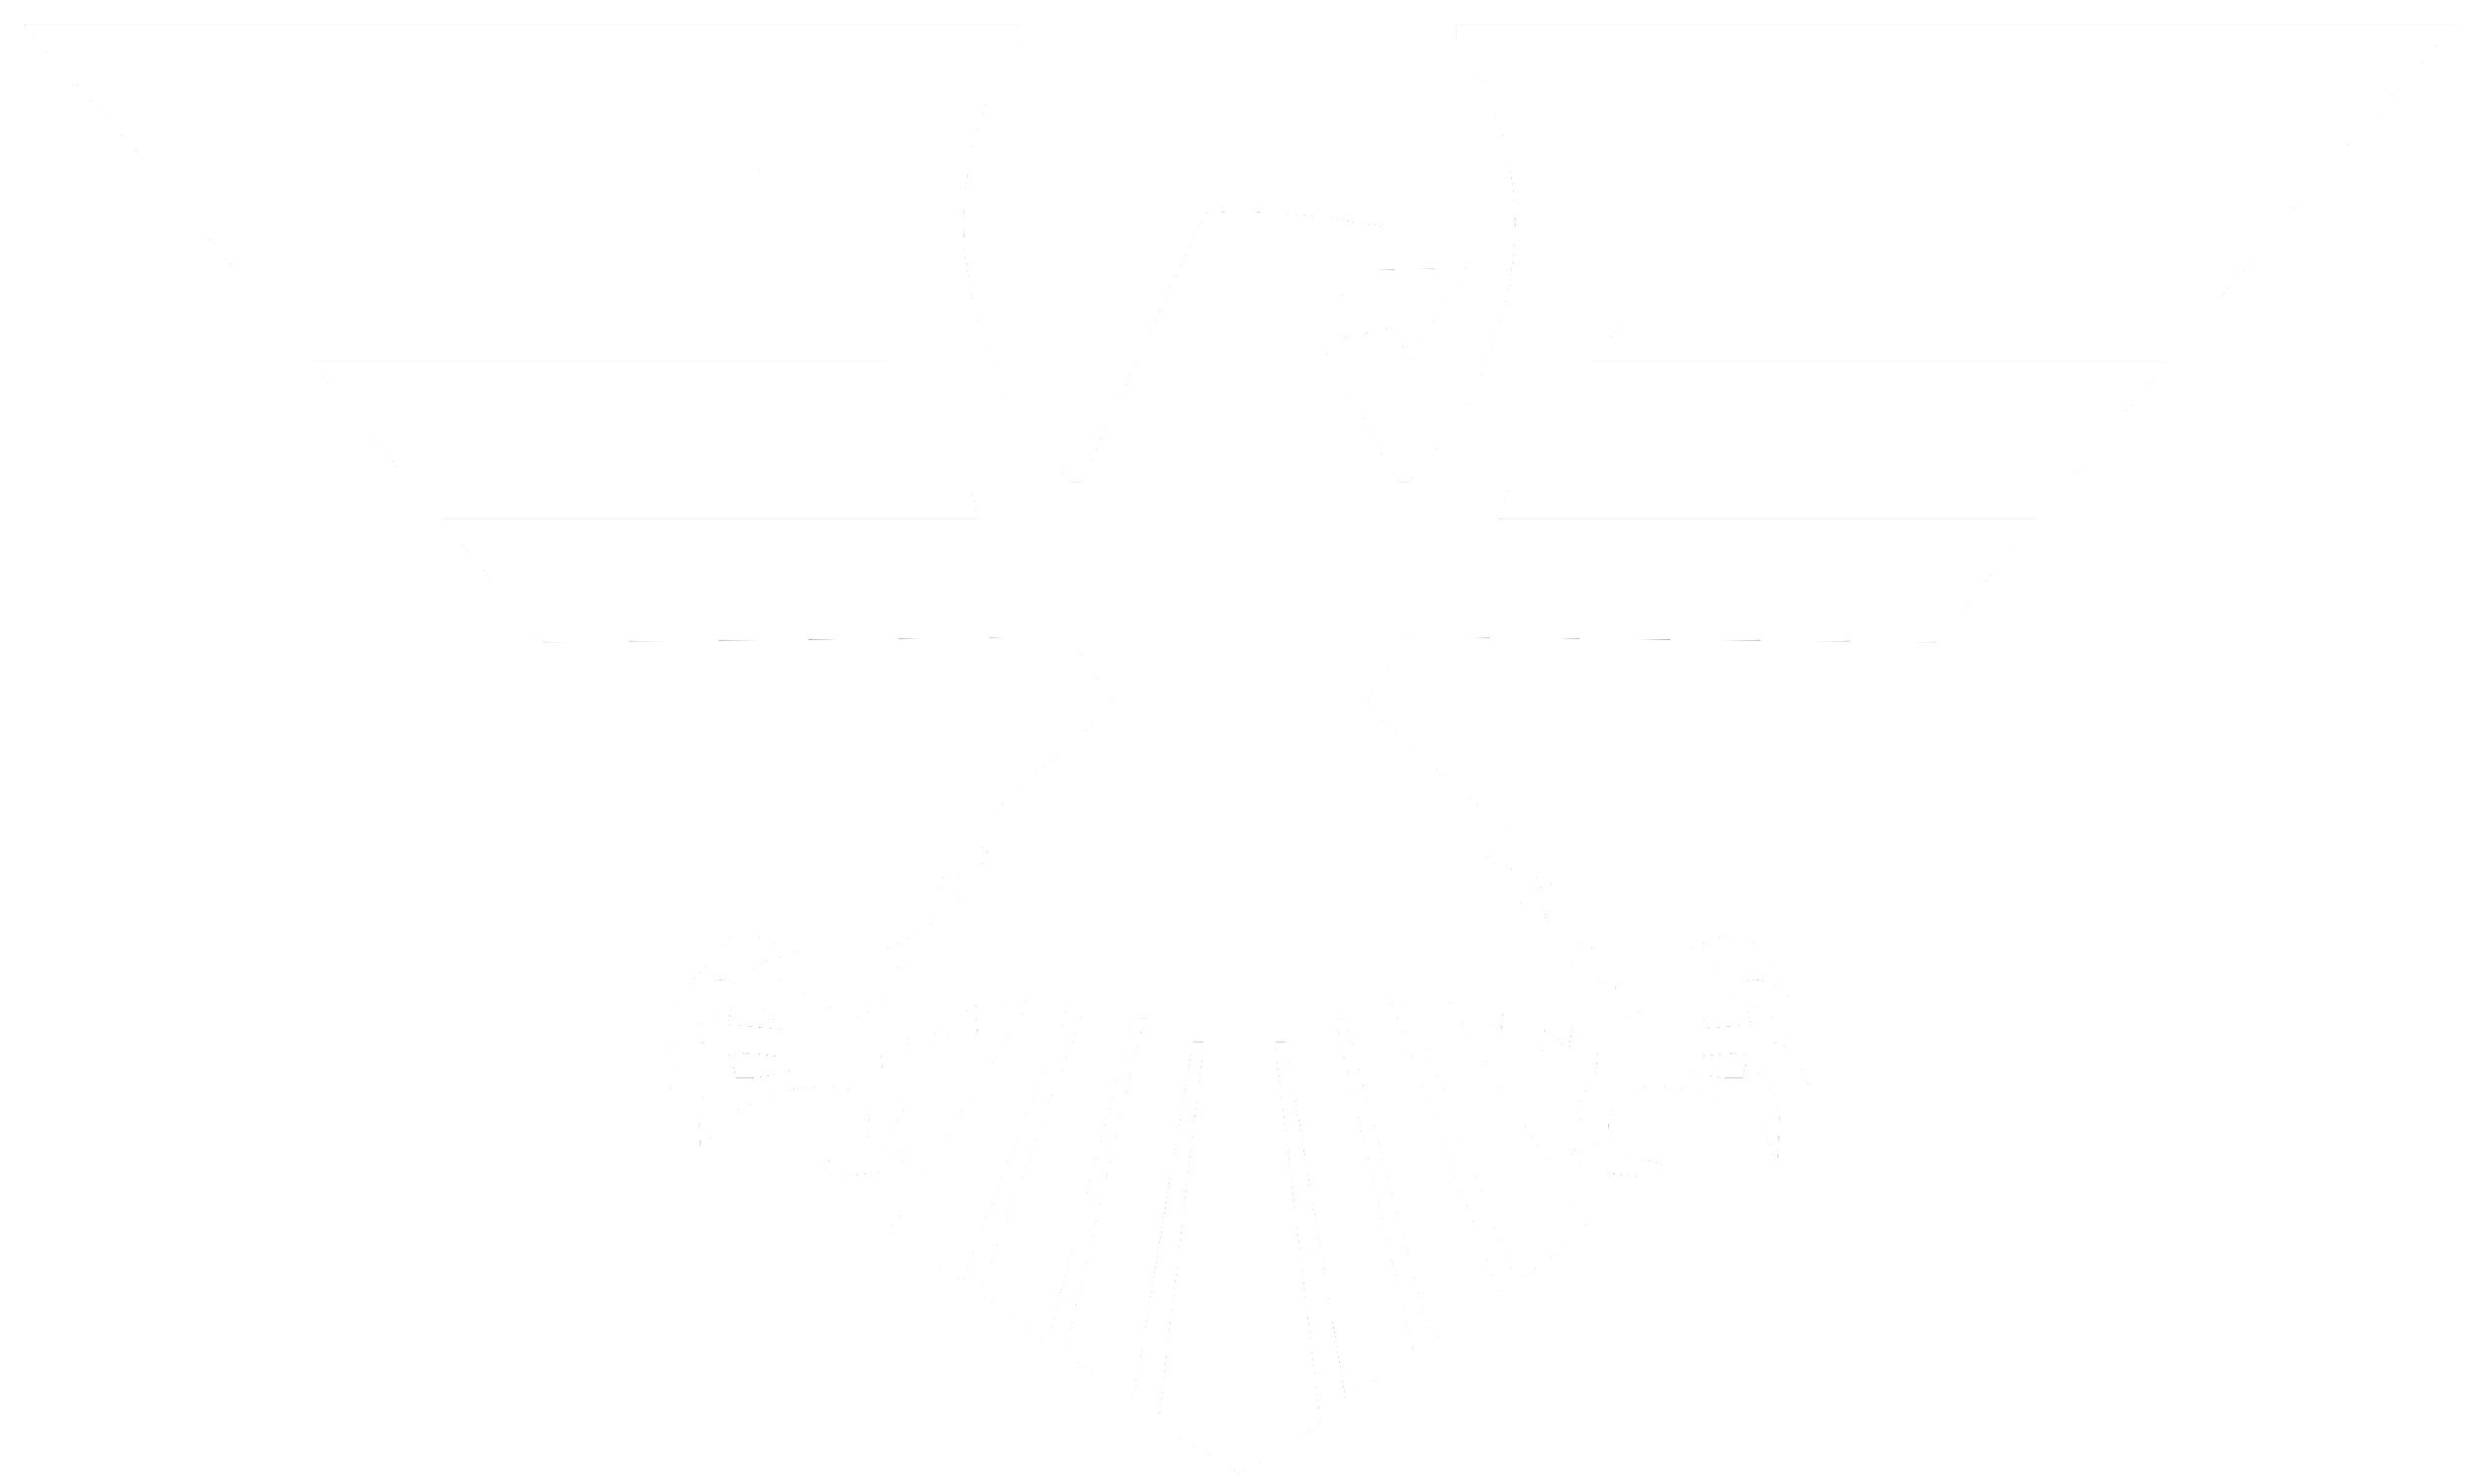 White eagle_PNG1232.png